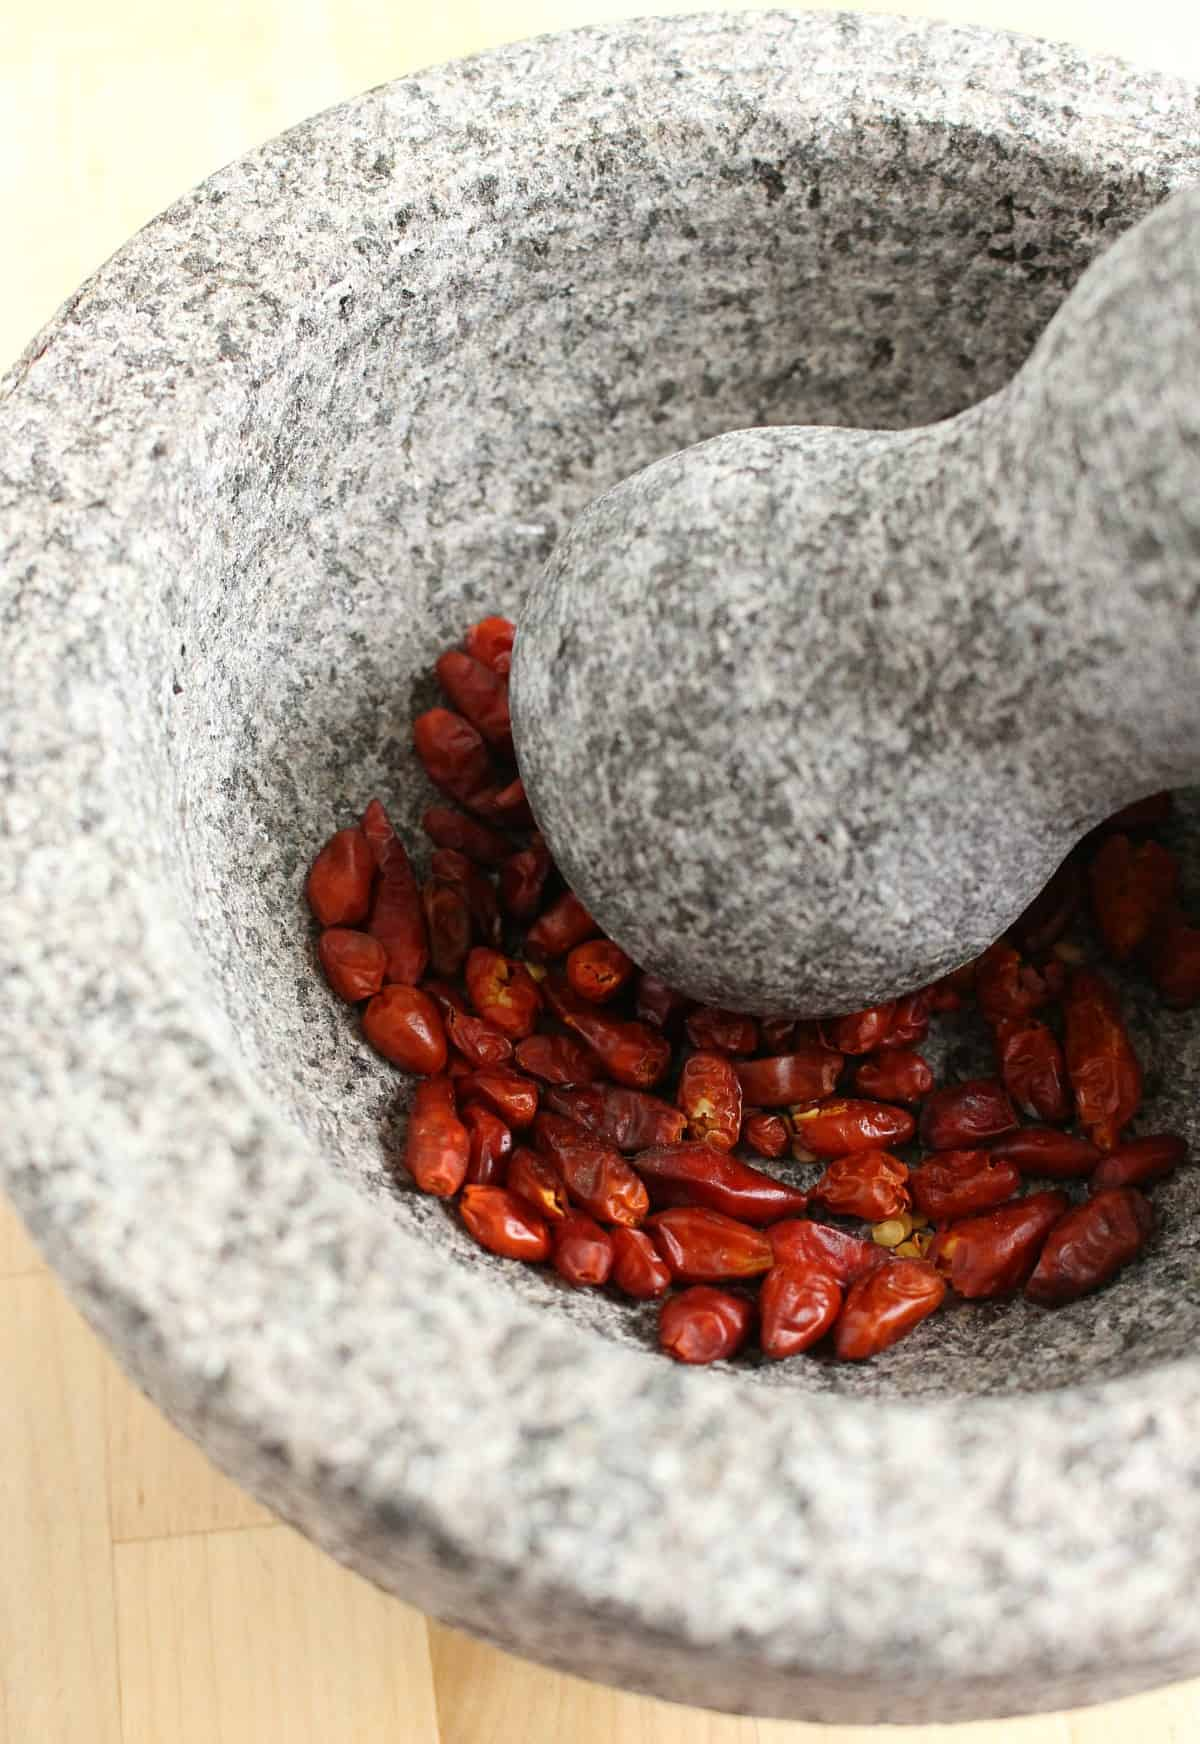 Dried chile piquin grinding in a molcajete.